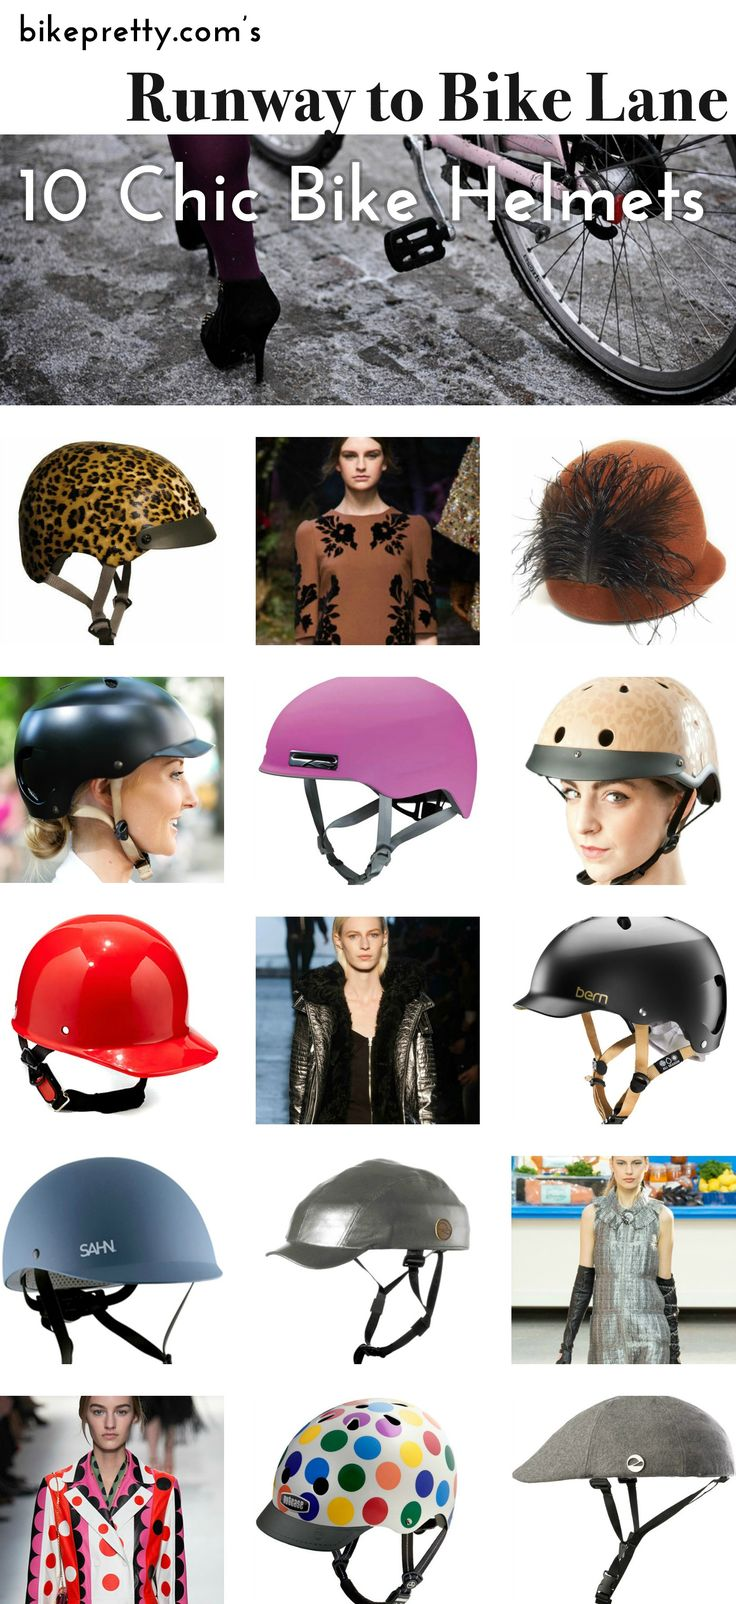 From the runway to the bike lane, here are 10 chic bike helmets to help you cycle in style.